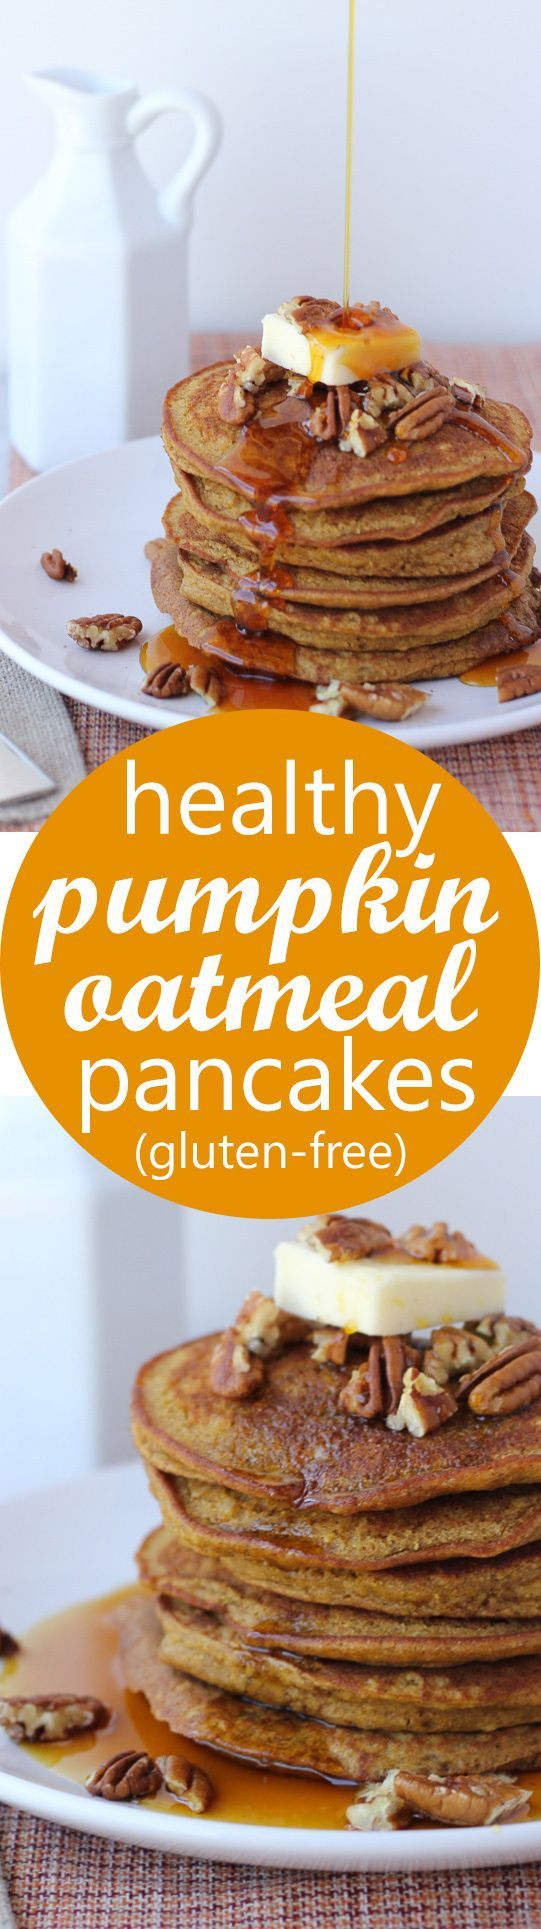 Healthy Pumpkin Oatmeal Pancakes! Easy, delicious gluten-free pancakes | YUM! Let's make these gluten free pumpkin pancakes for breakfast this Saturday!